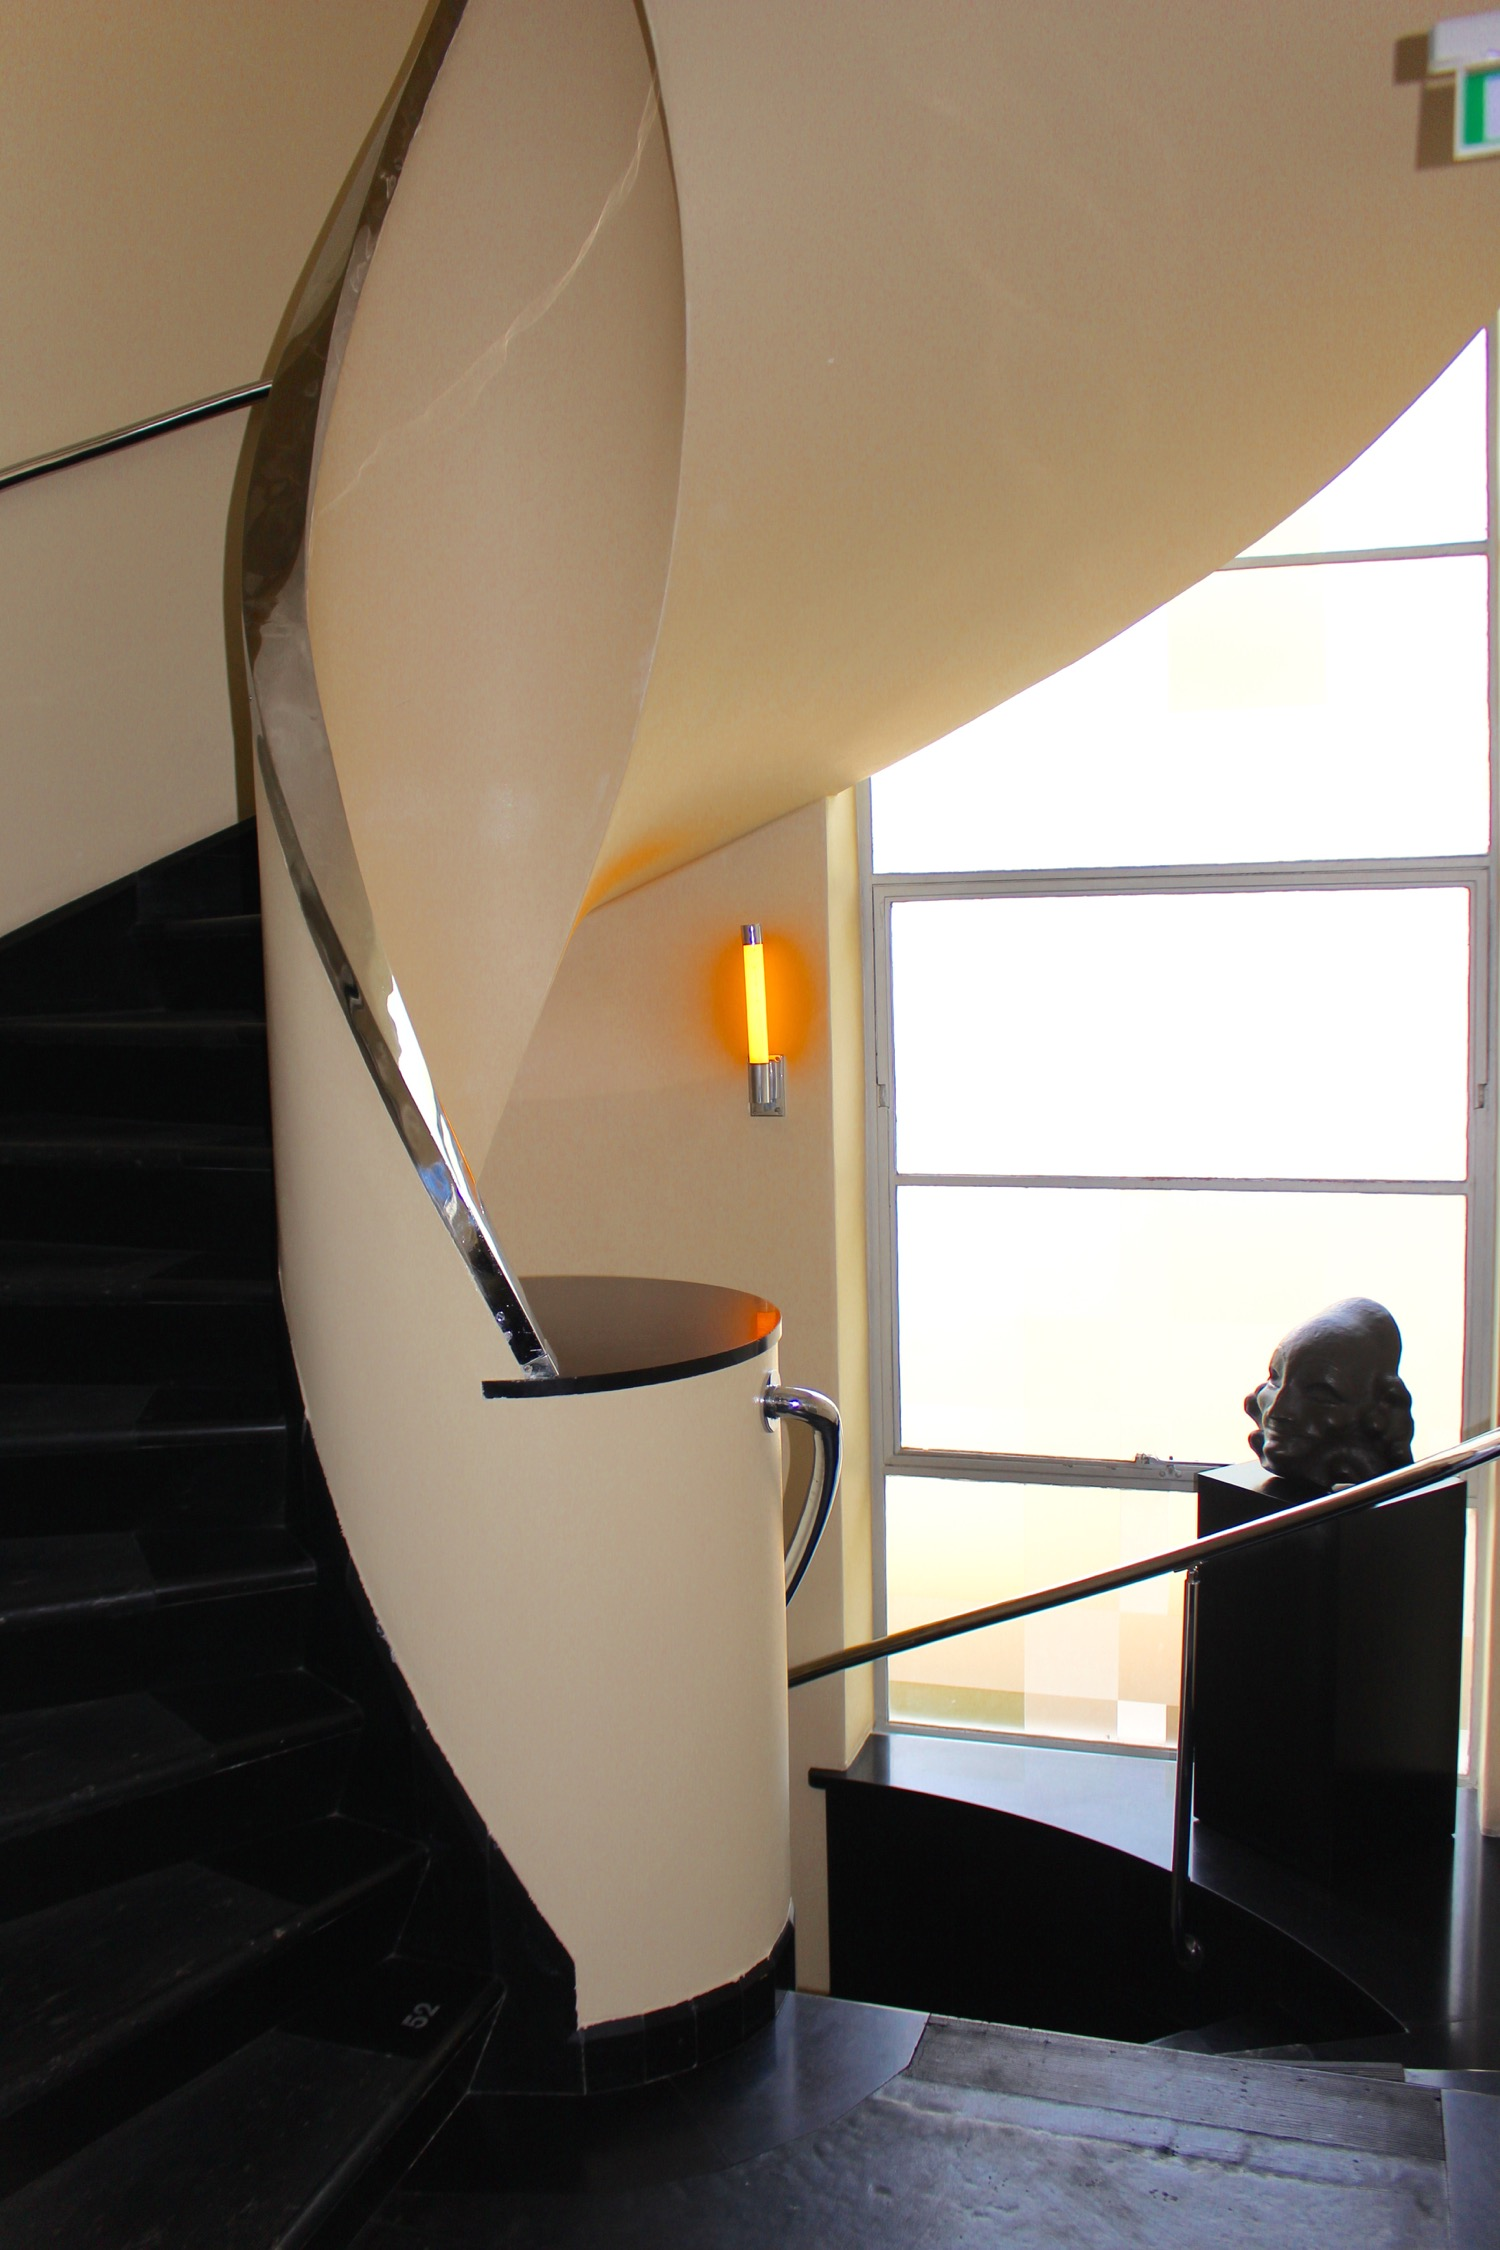 DRAMATIC CIRCULAR STAIRWAY CONNECTING THE FLOORS